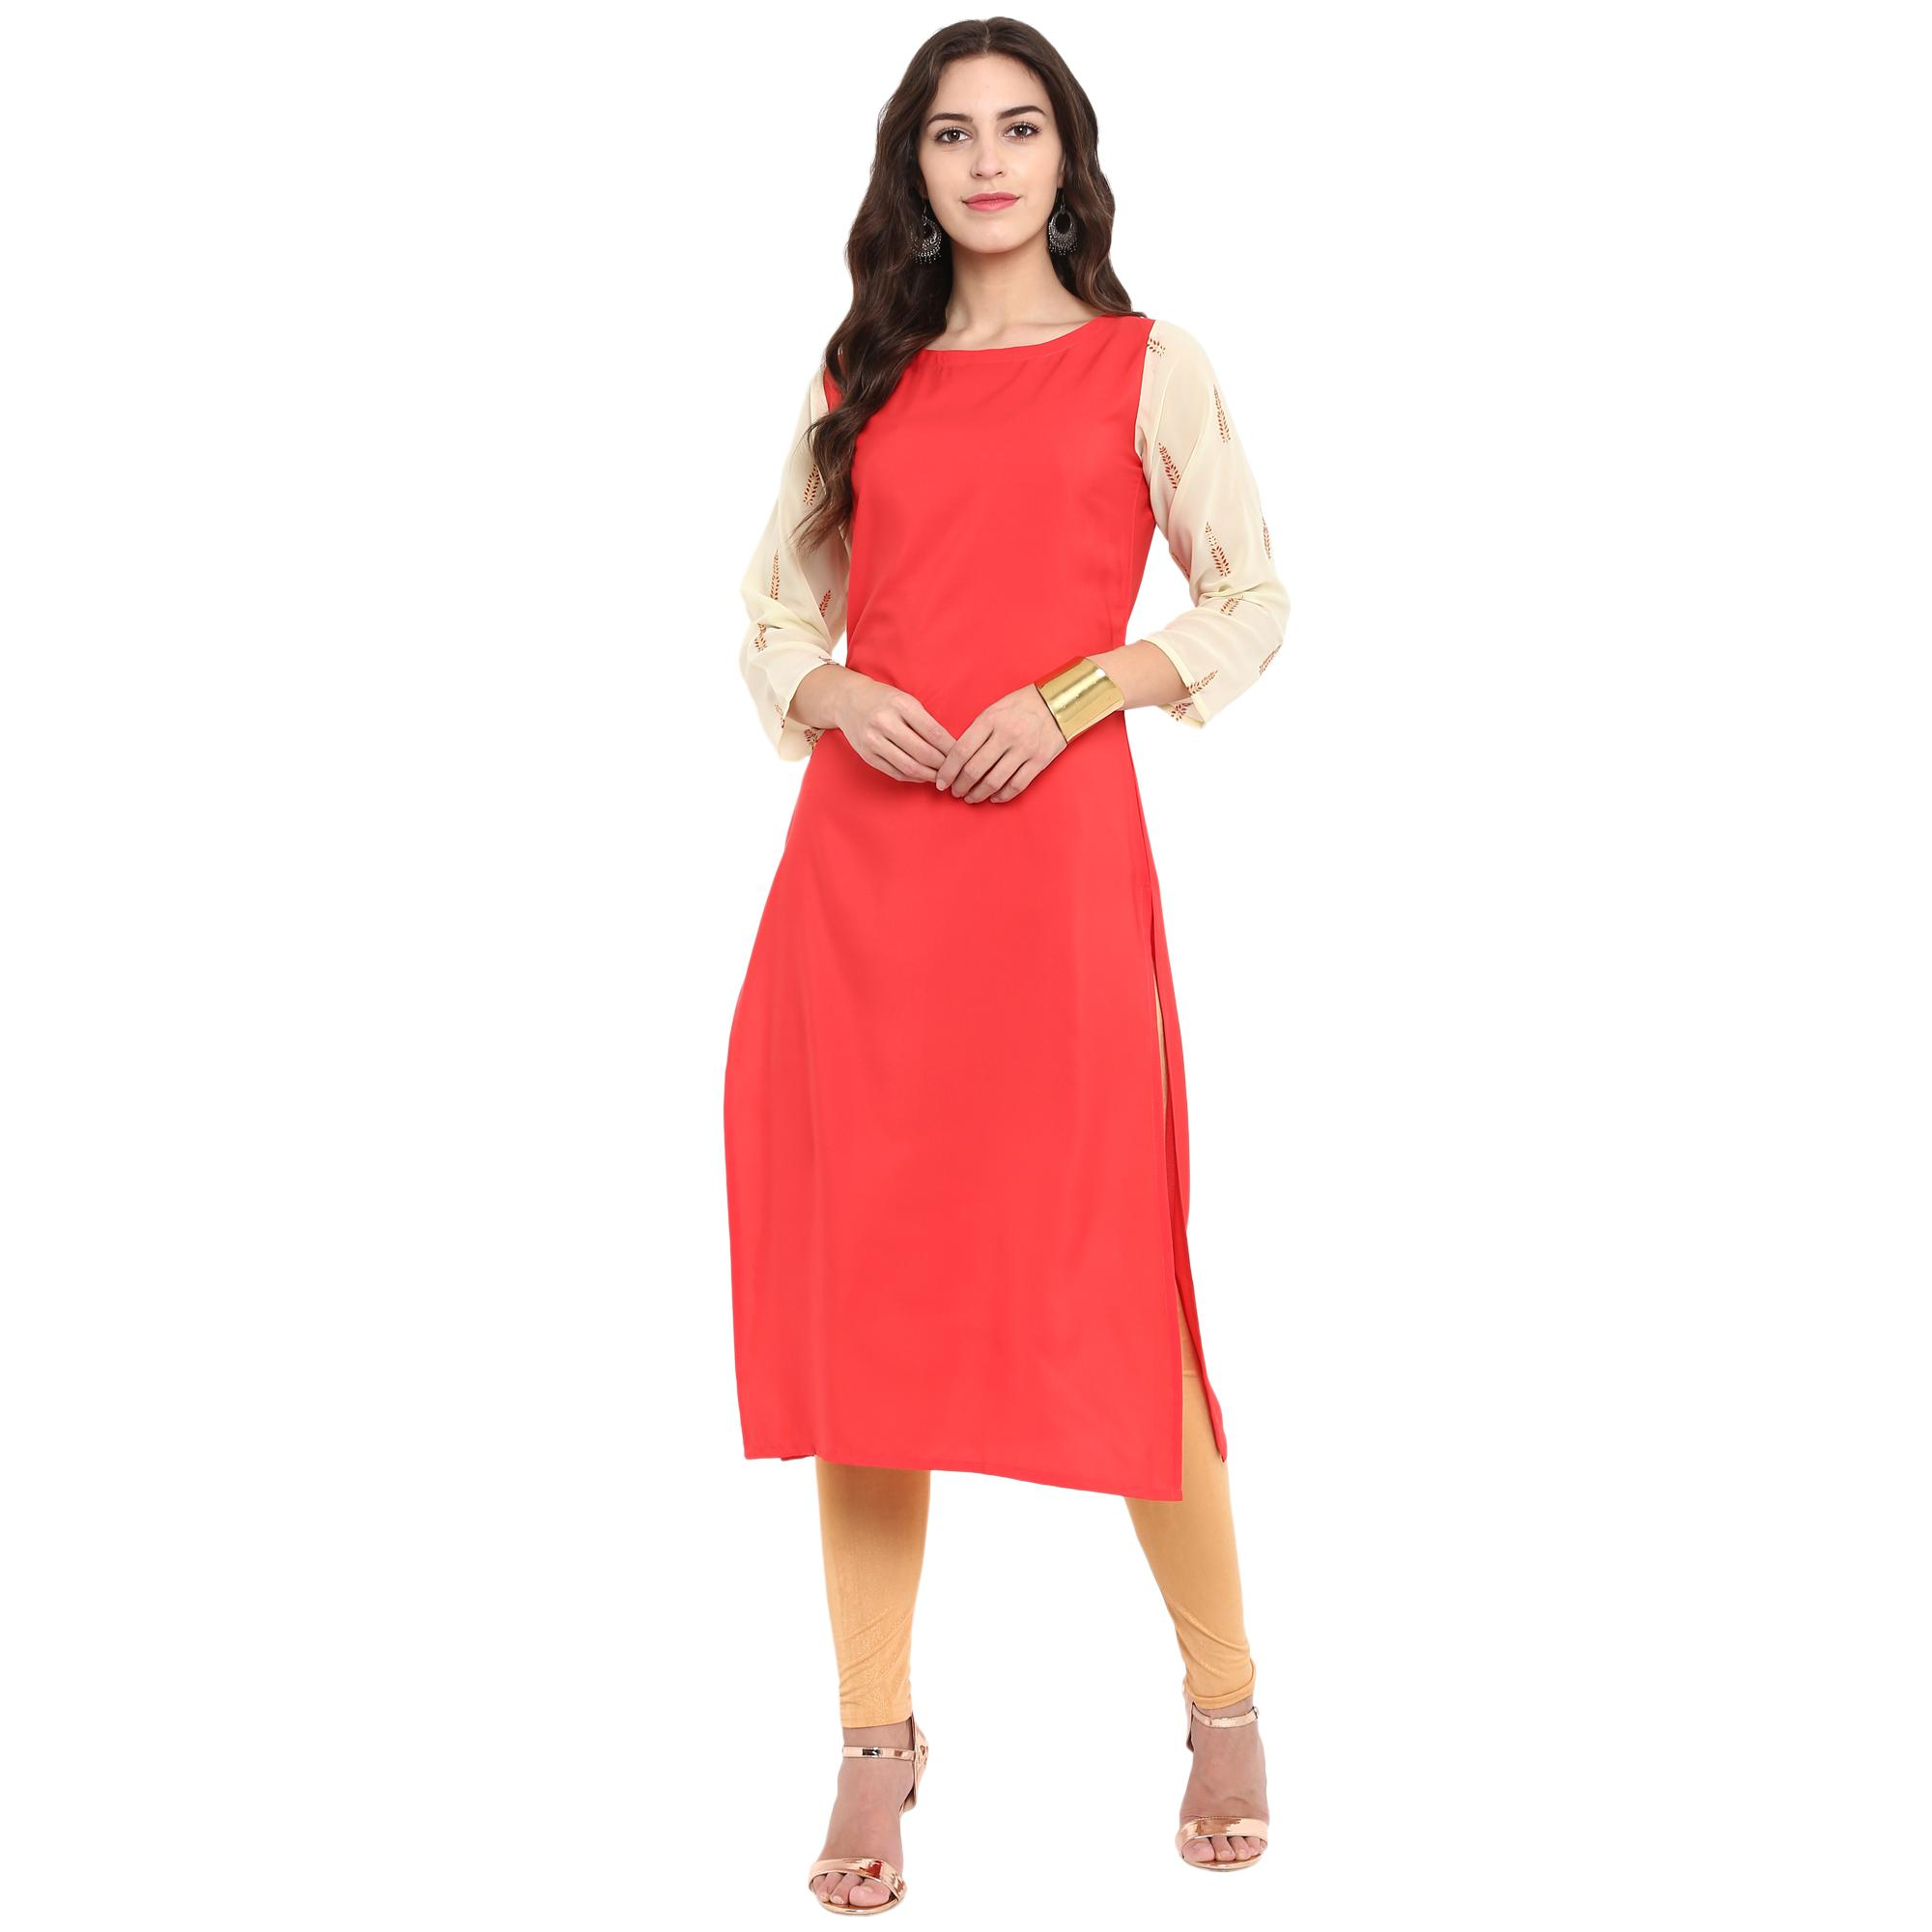 Ahalyaa - Red Colored Casual Foil Printed Georgette Kurti